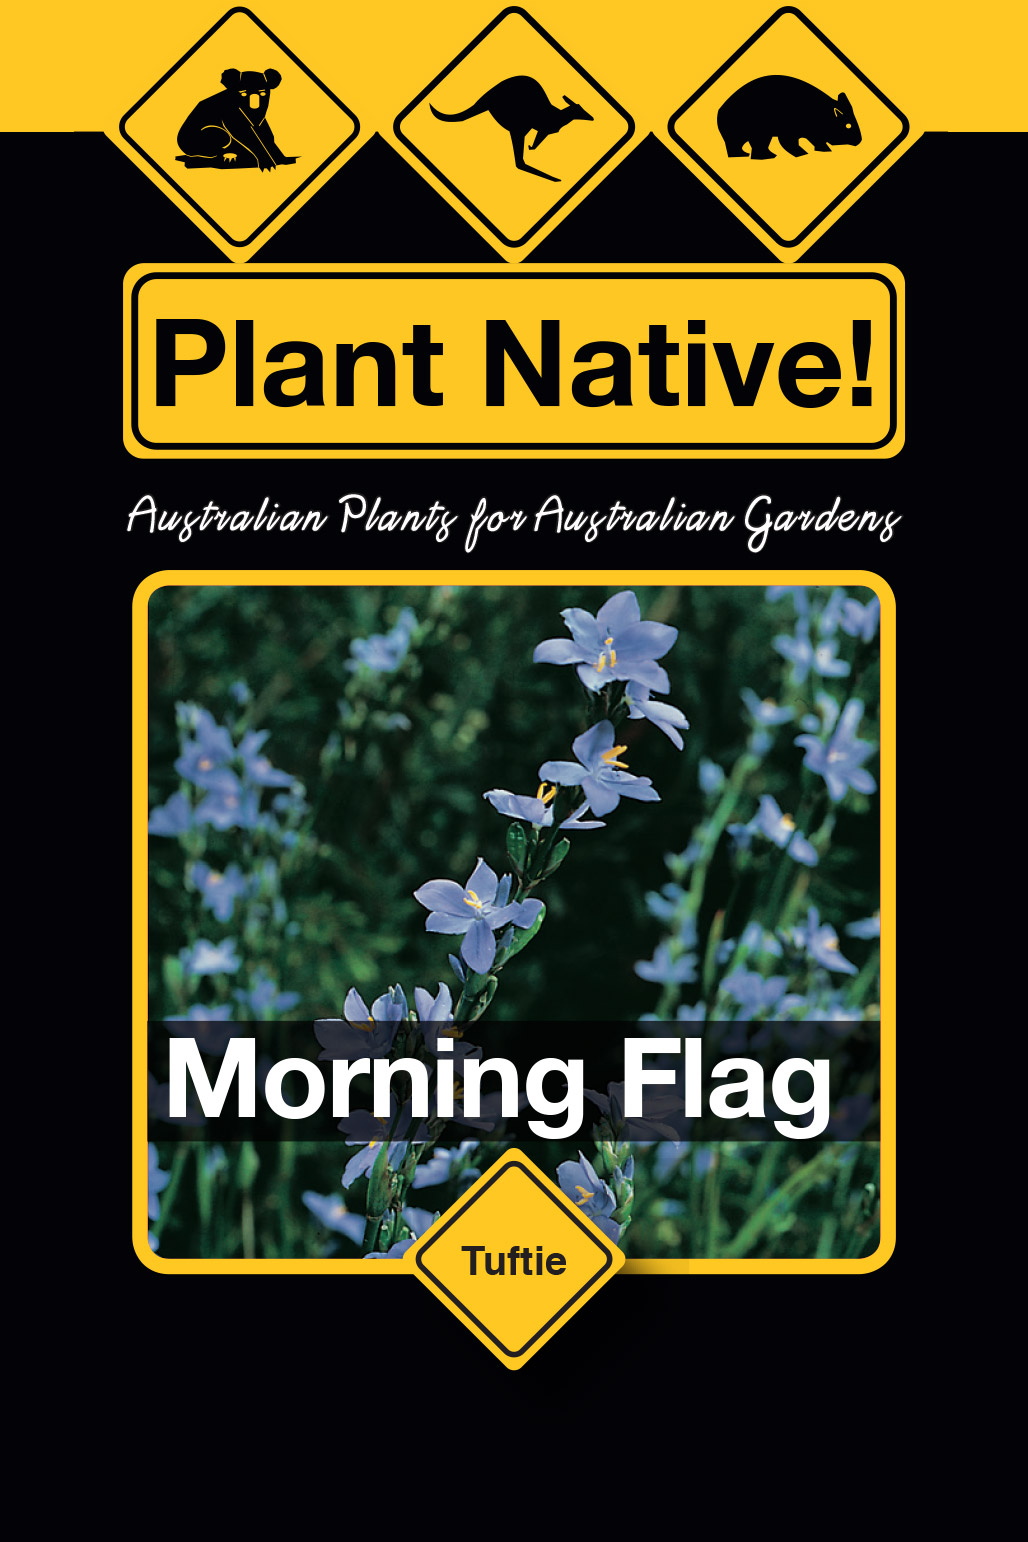 Morning Flag - Plant Native!